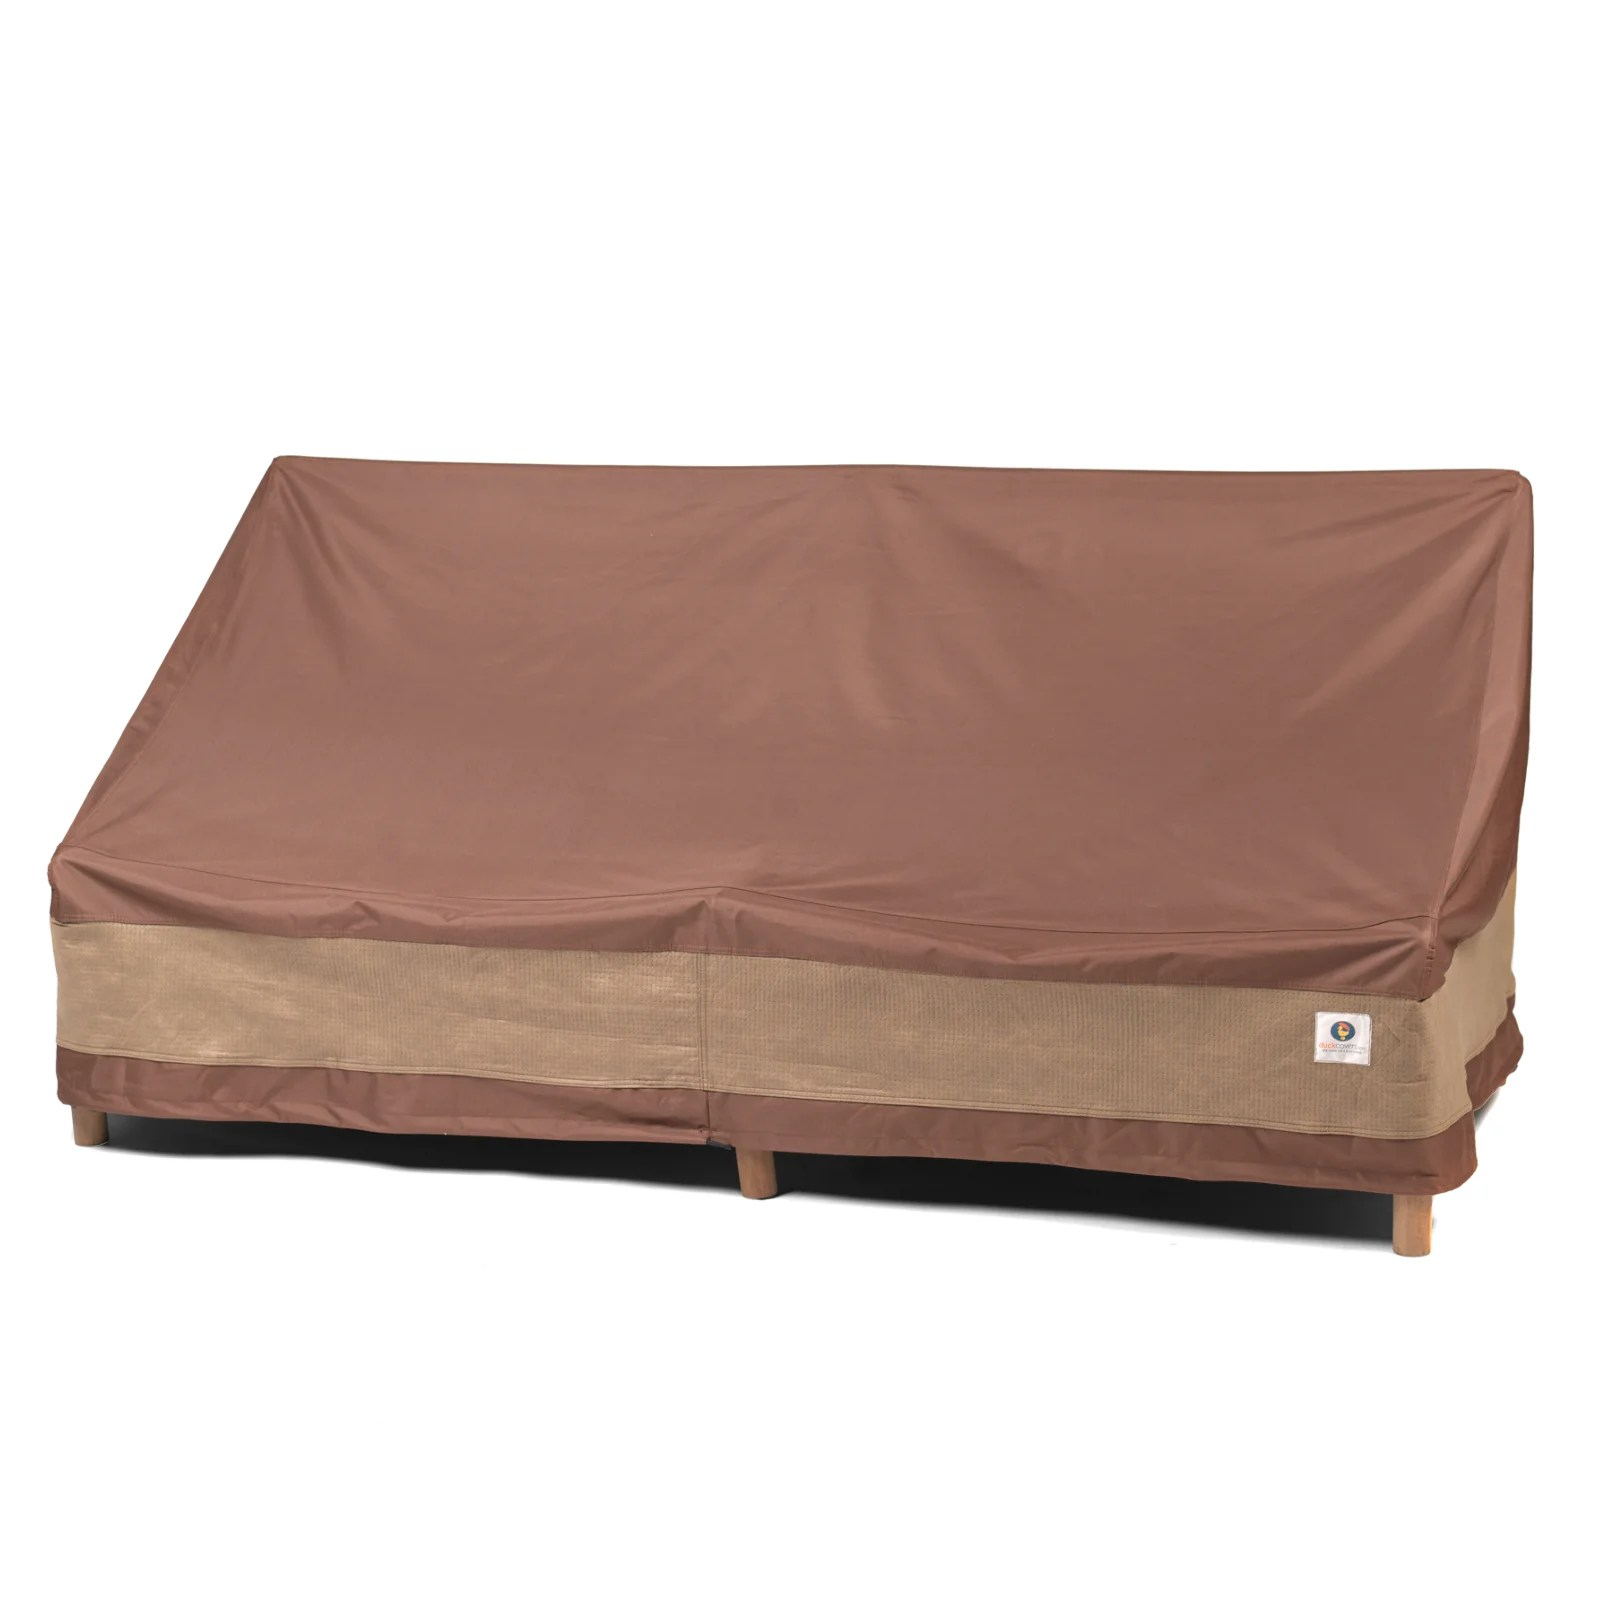 outdoor furniture covers sectional sofa how to fix a rip in leather duck ultimate patio cover and reviews wayfair